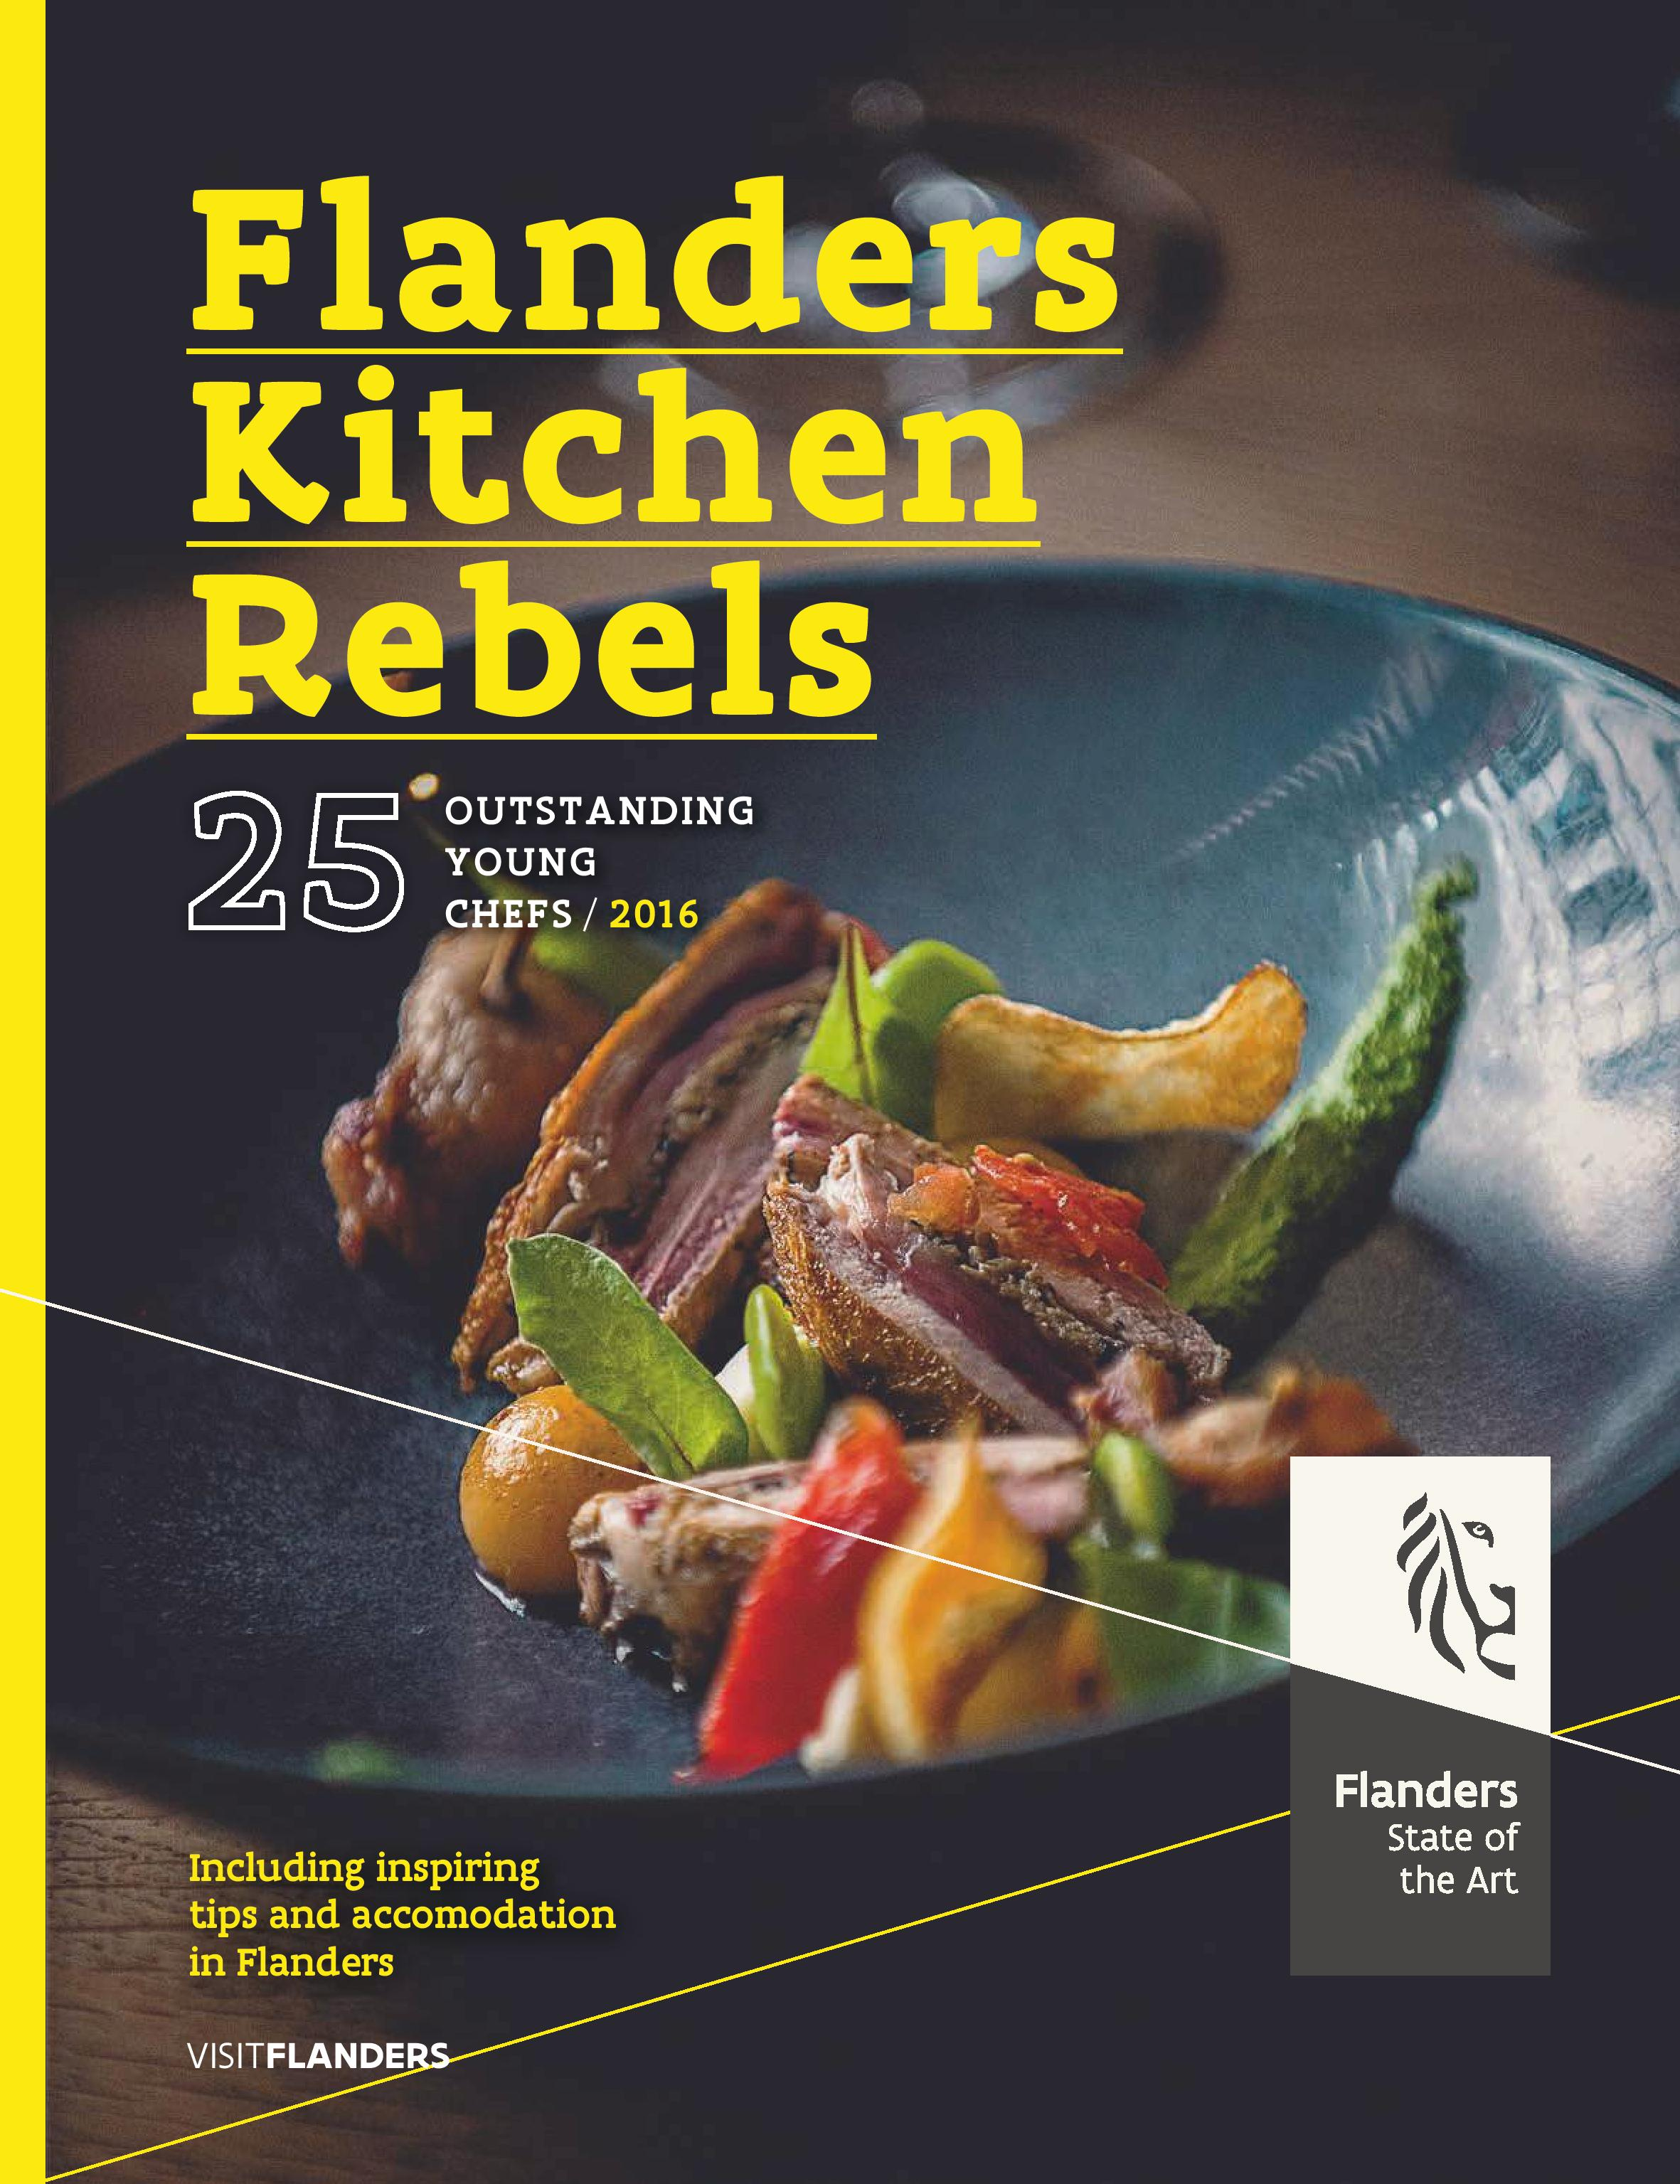 Flanders_Kitchen_Rebels_2015_EN_OutstandingYoungChefs_tcm13-66302-page-001.jpg